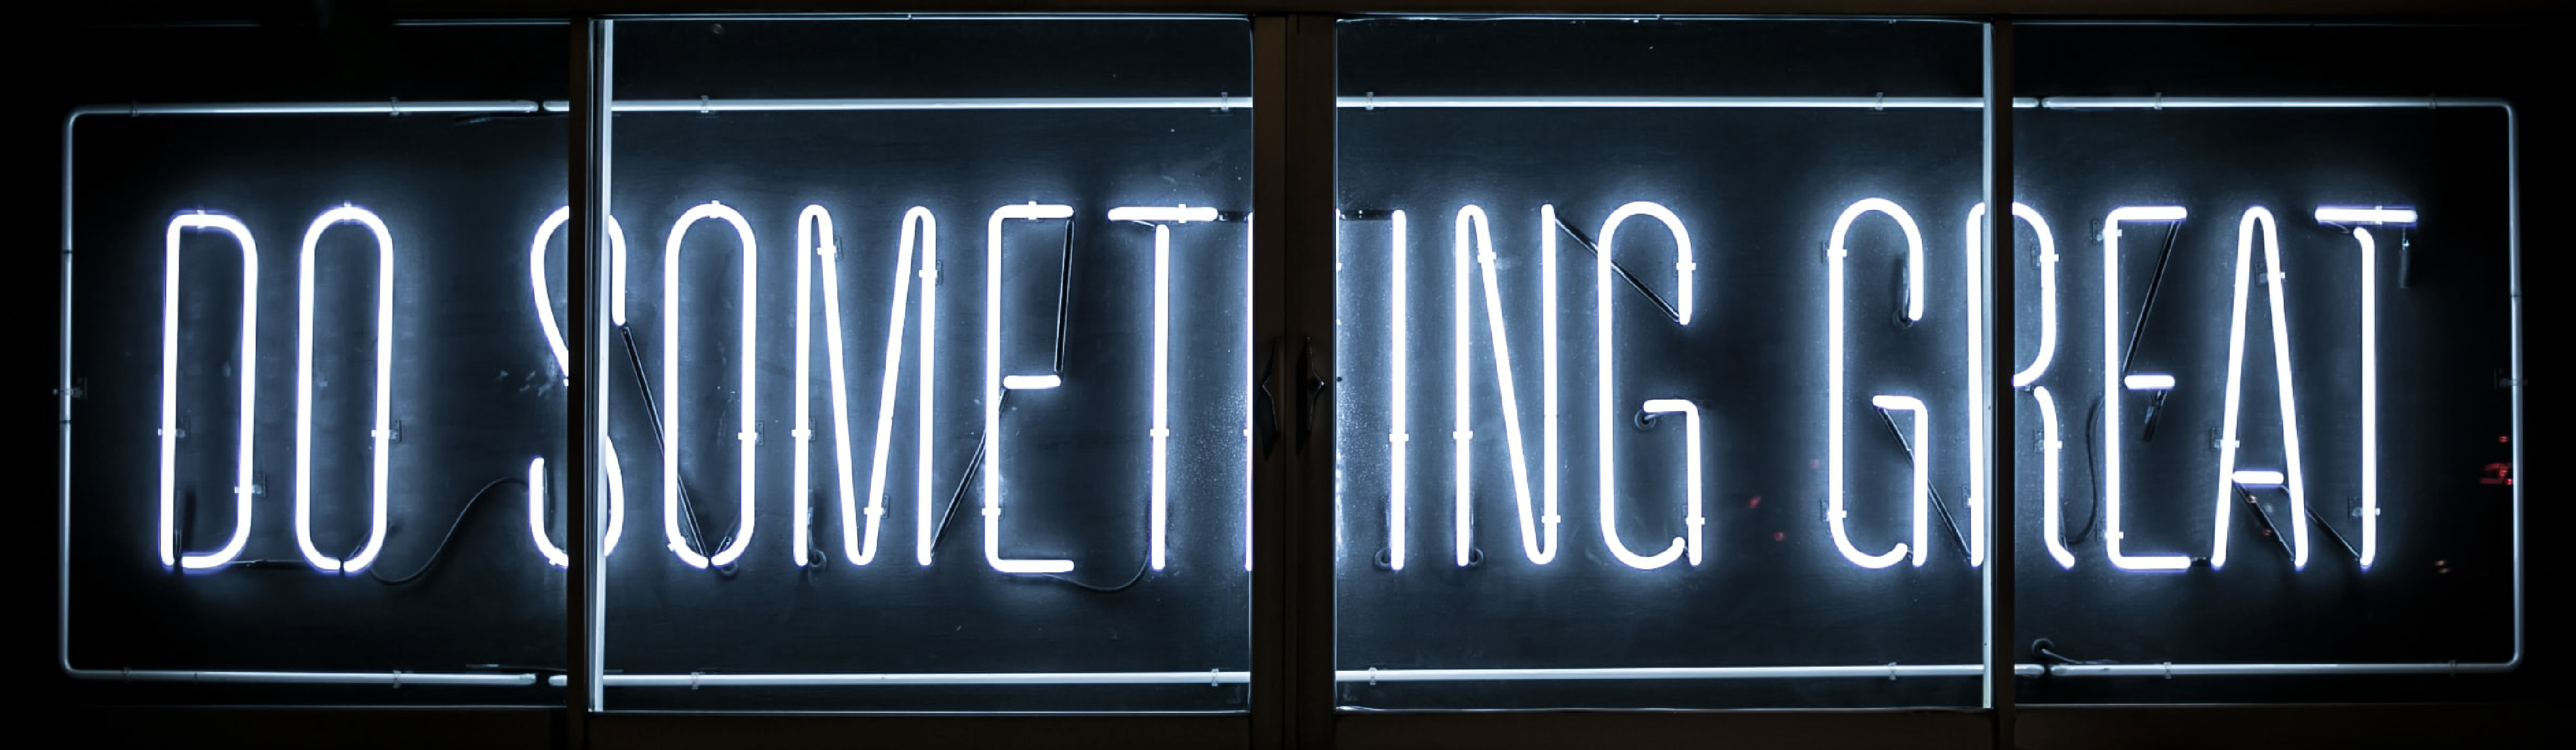 5 Innovative Ideas to Keep Your Marketing Efforts Relevant